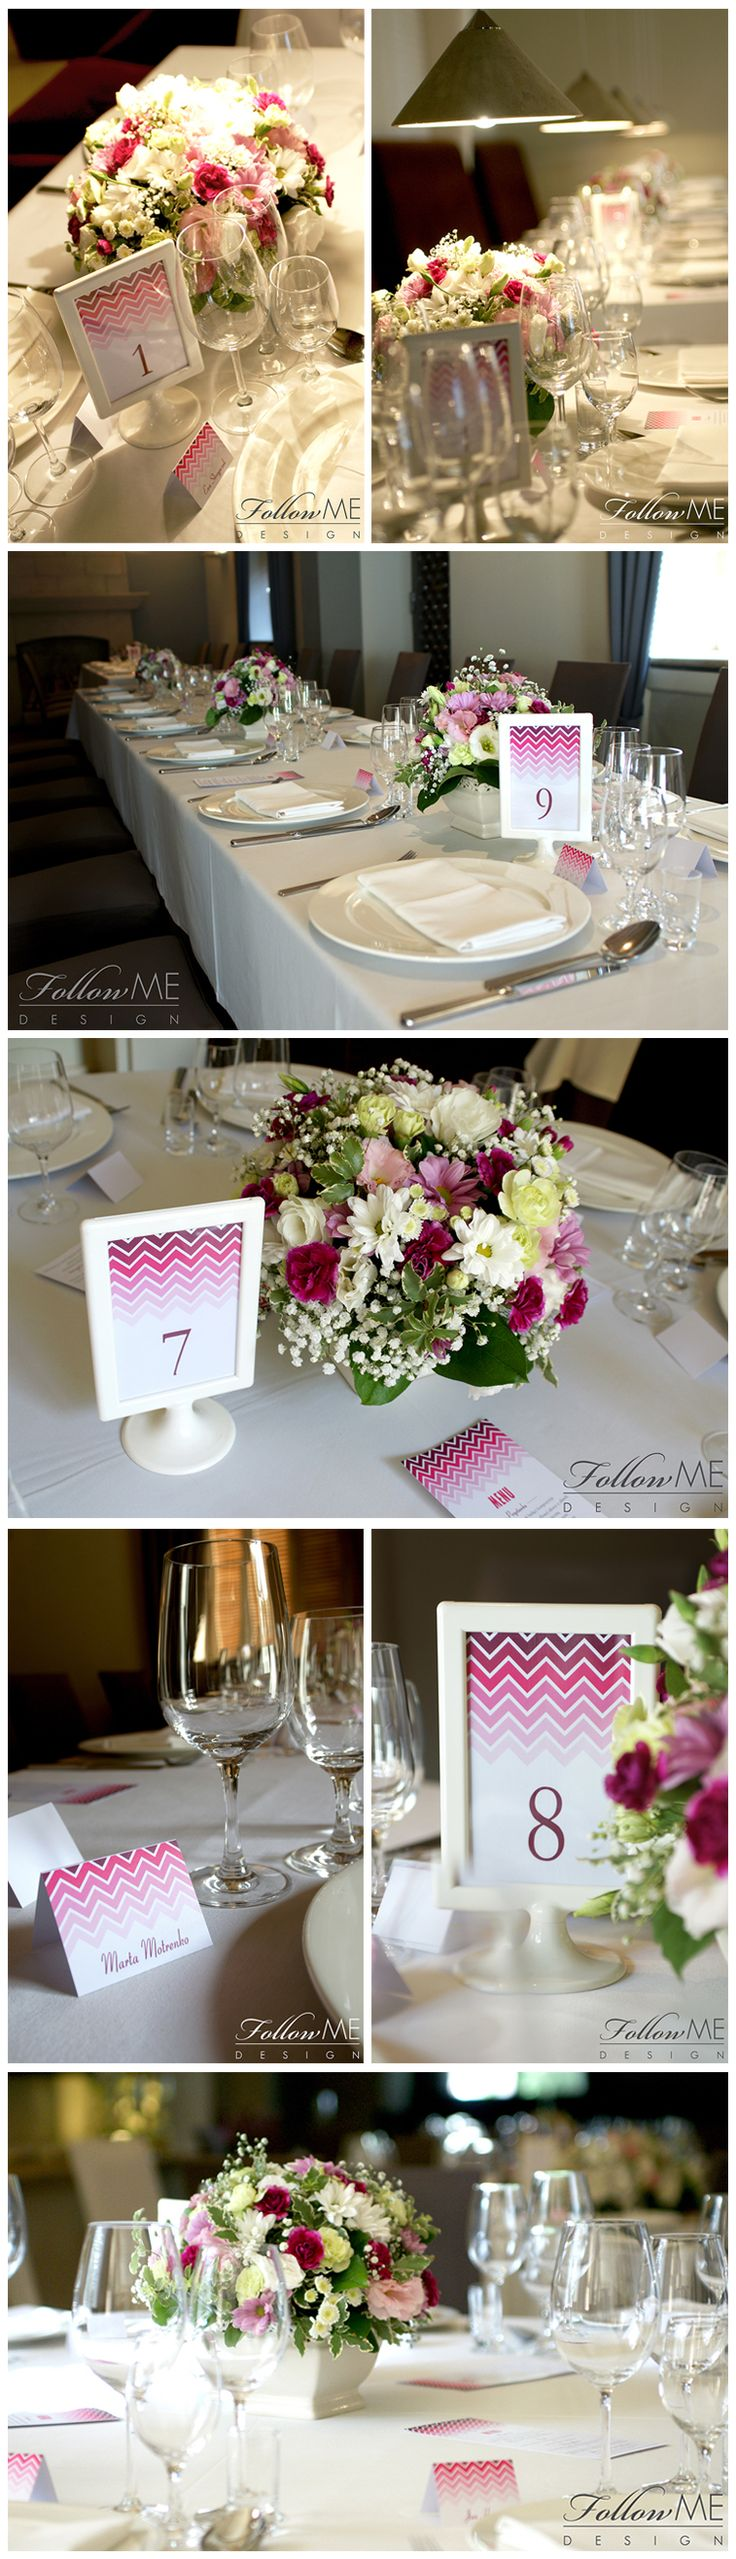 Dekoracje stołu / Karta menu / Winietki / Numery stołów / Różowe dekoracje ślubne od FollowMe DESIGN / Table Decorations / Menu Cards / Wedding Place Card / Table Number / Pink Wedding Decorations & Details by FollowMe DESIGN